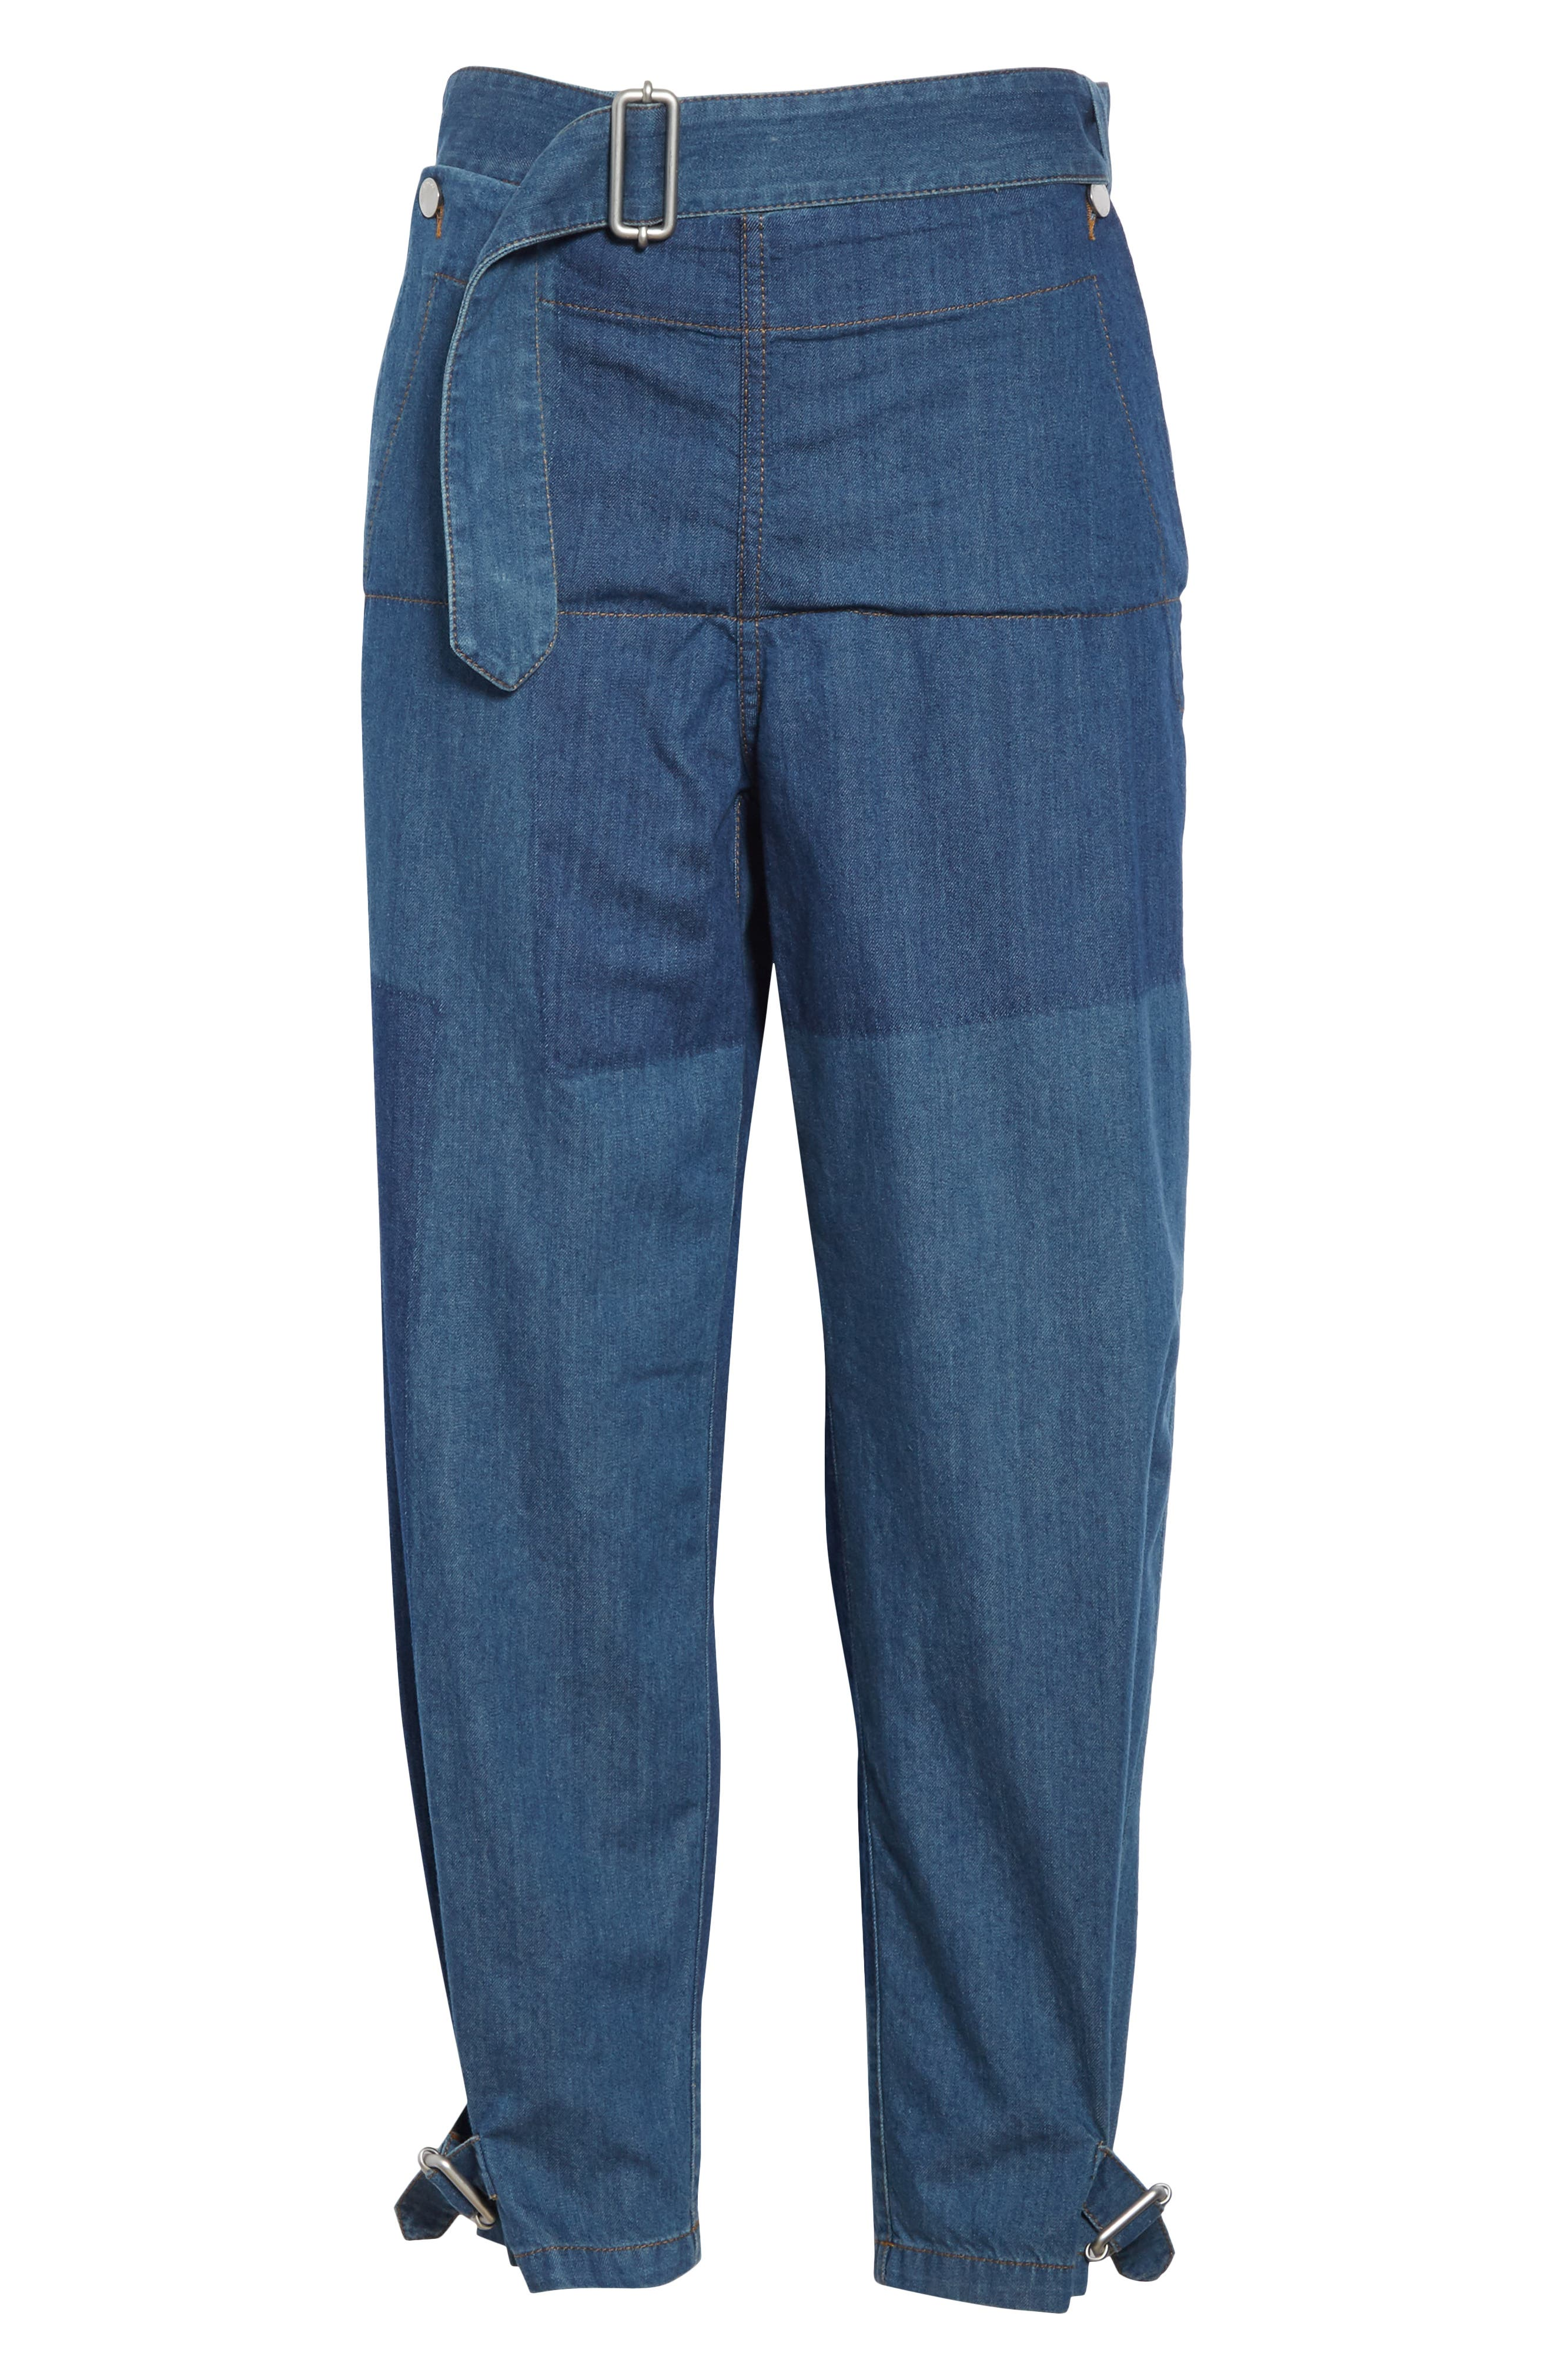 JW ANDERSON,                             Fold Front Jeans,                             Alternate thumbnail 6, color,                             MID BLUE